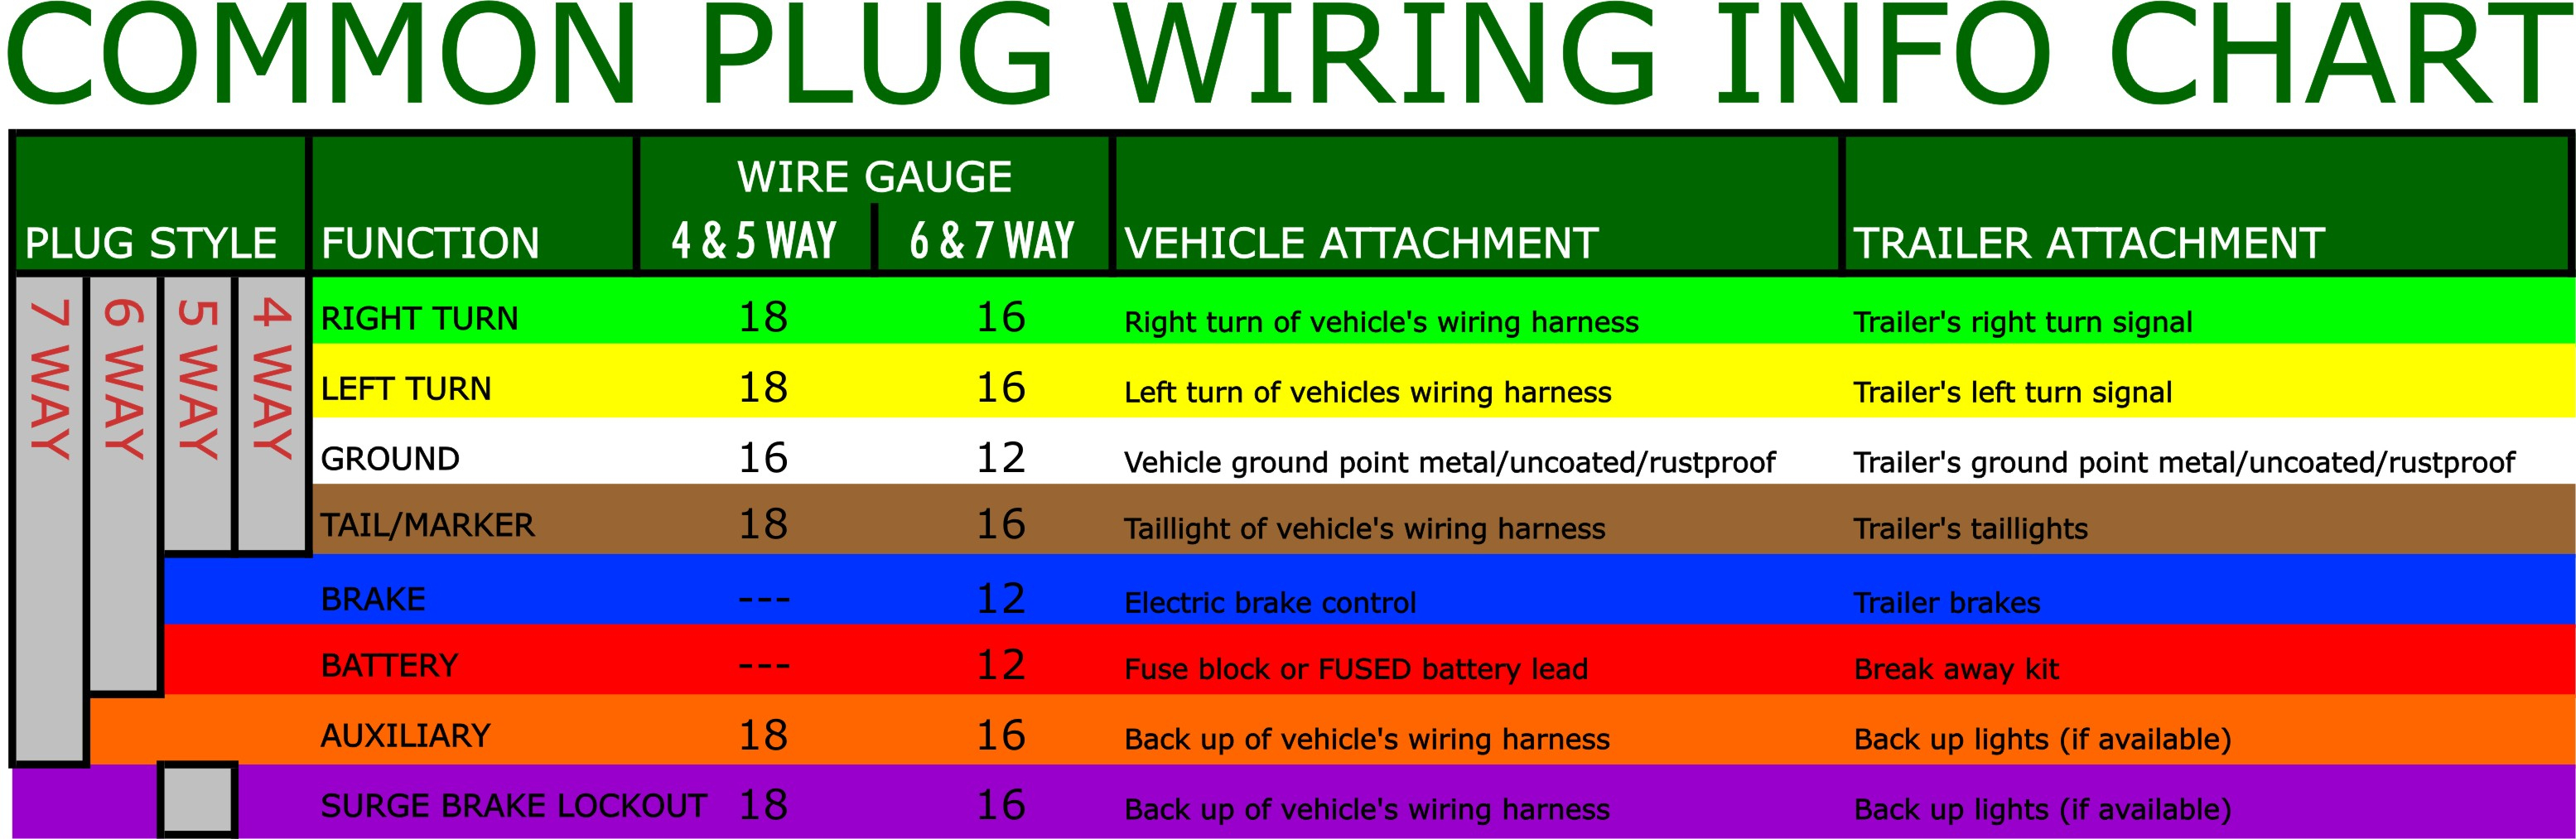 4 Pin Trailer Connector Wiring Harness | Wiring Diagram - 4-Way Trailer Wiring Diagram